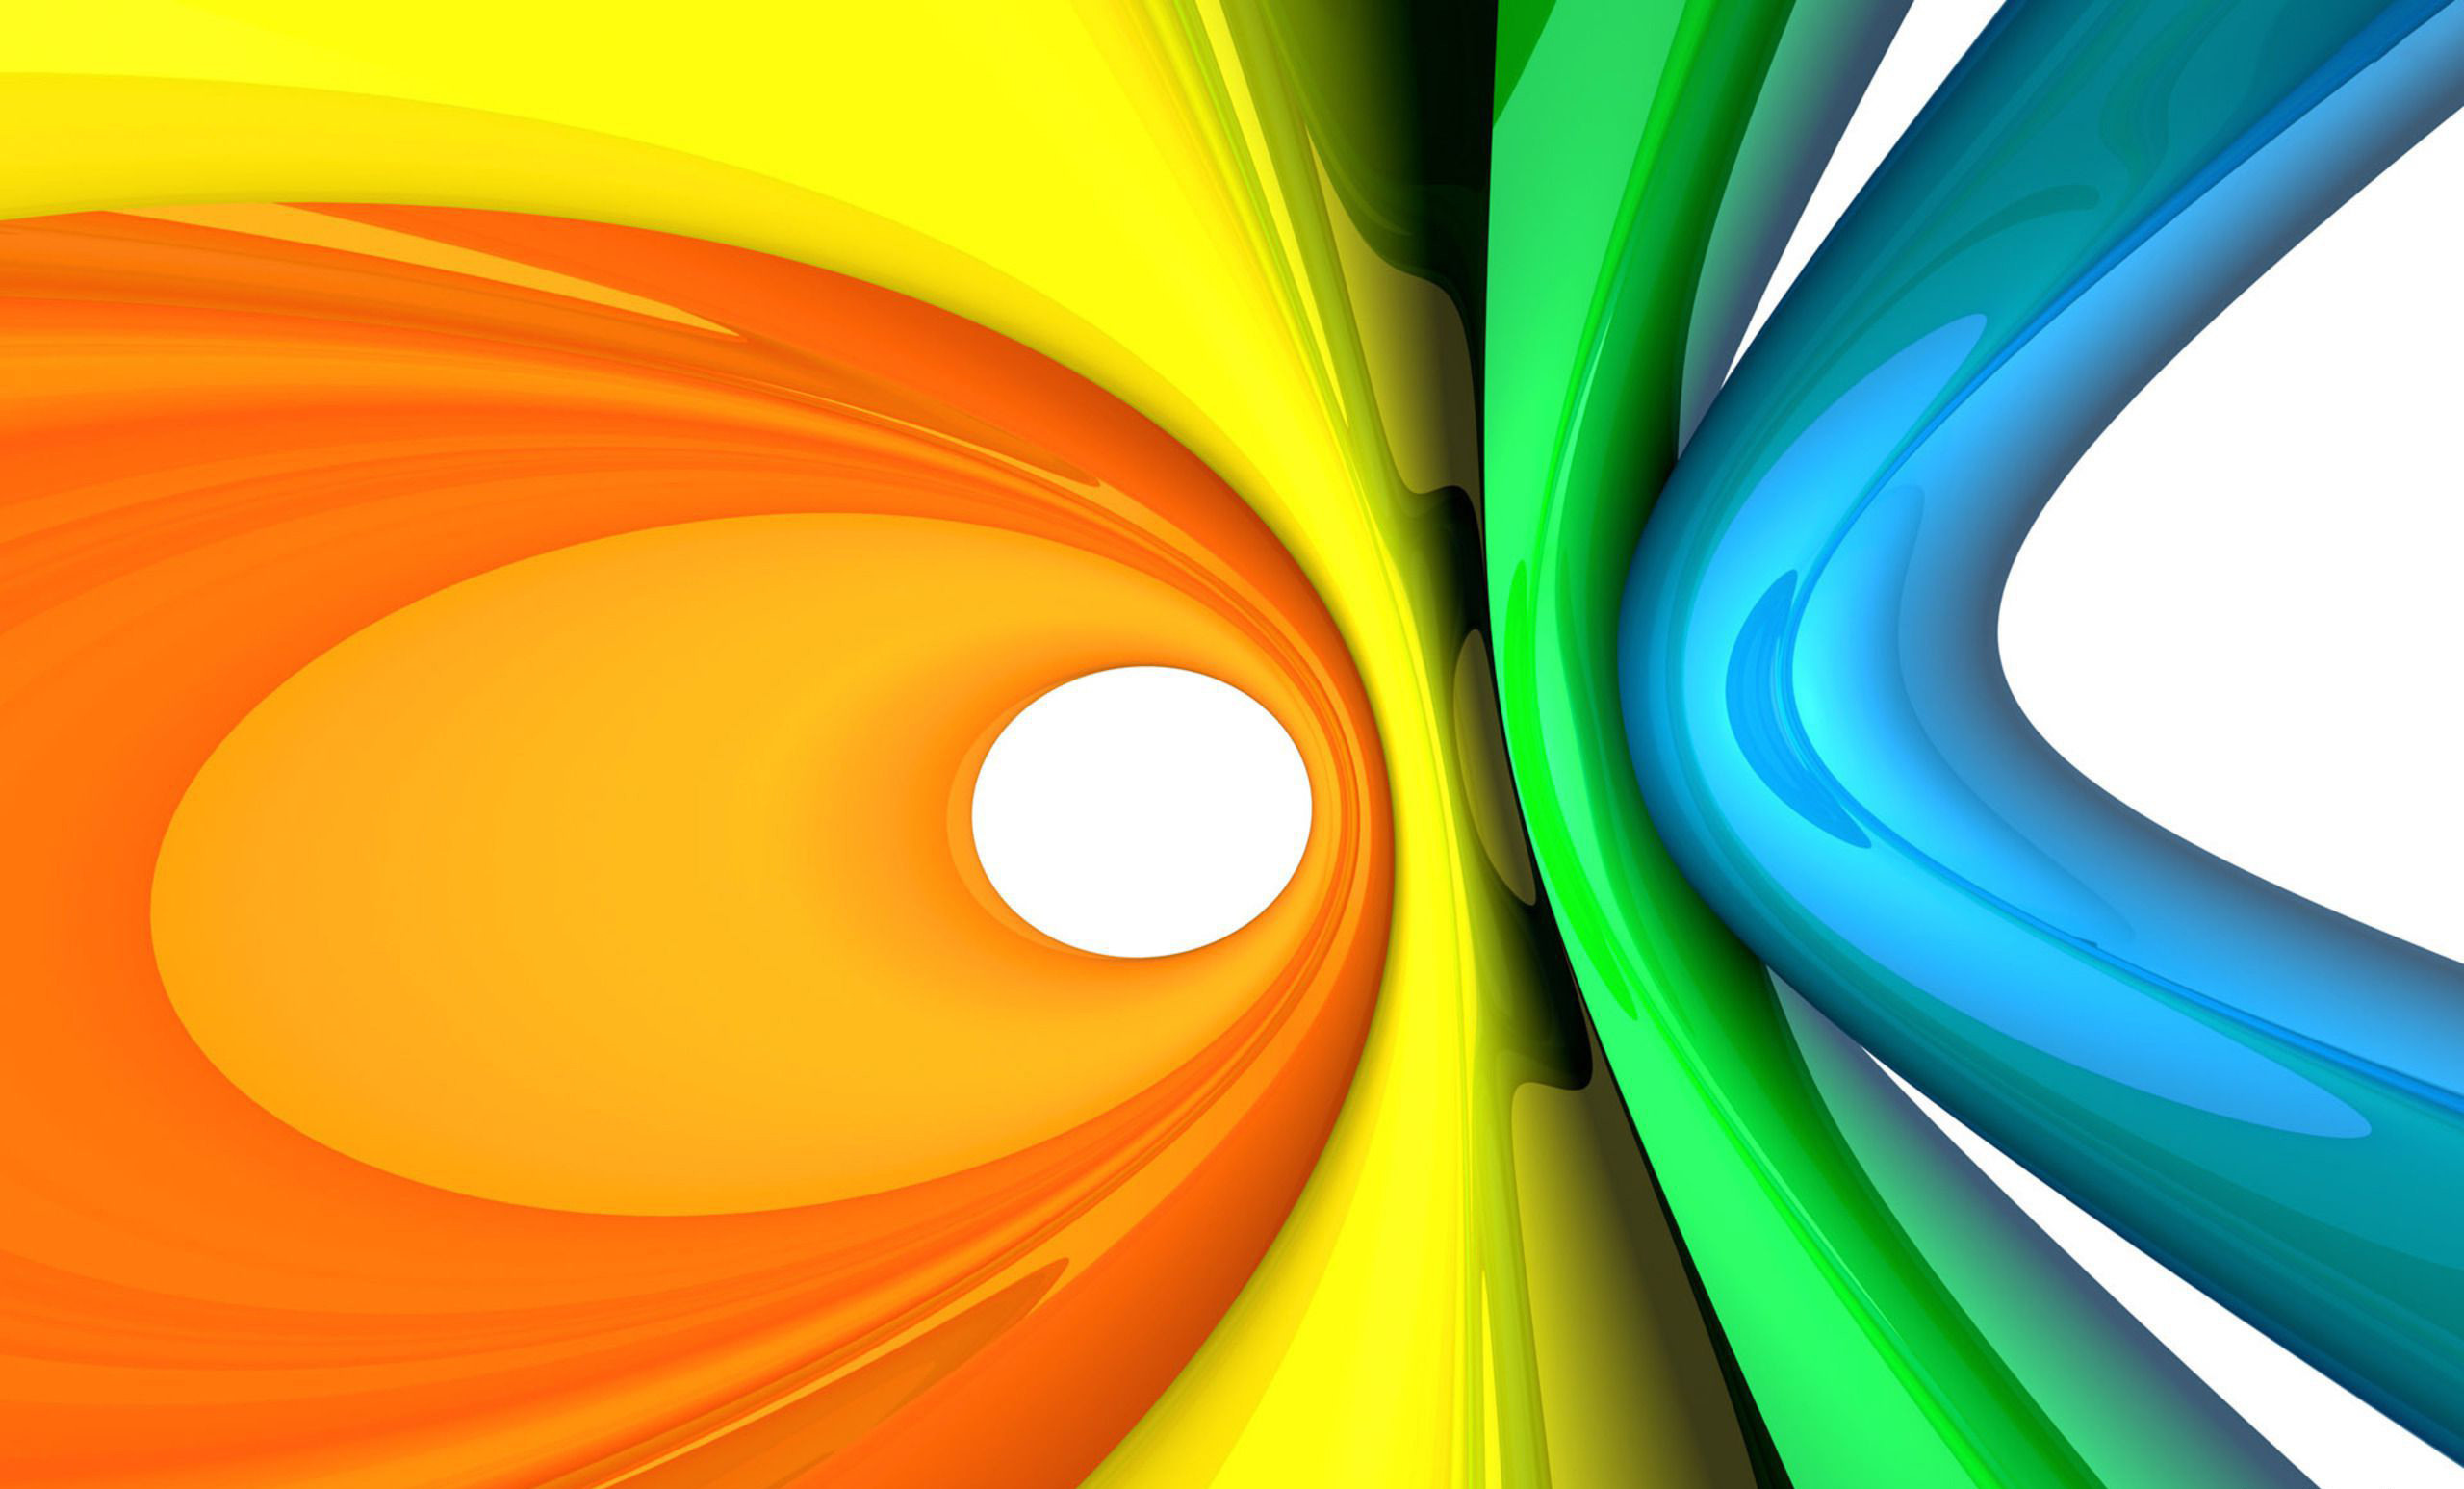 Blue And Yellow Backgrounds HD Free Download.